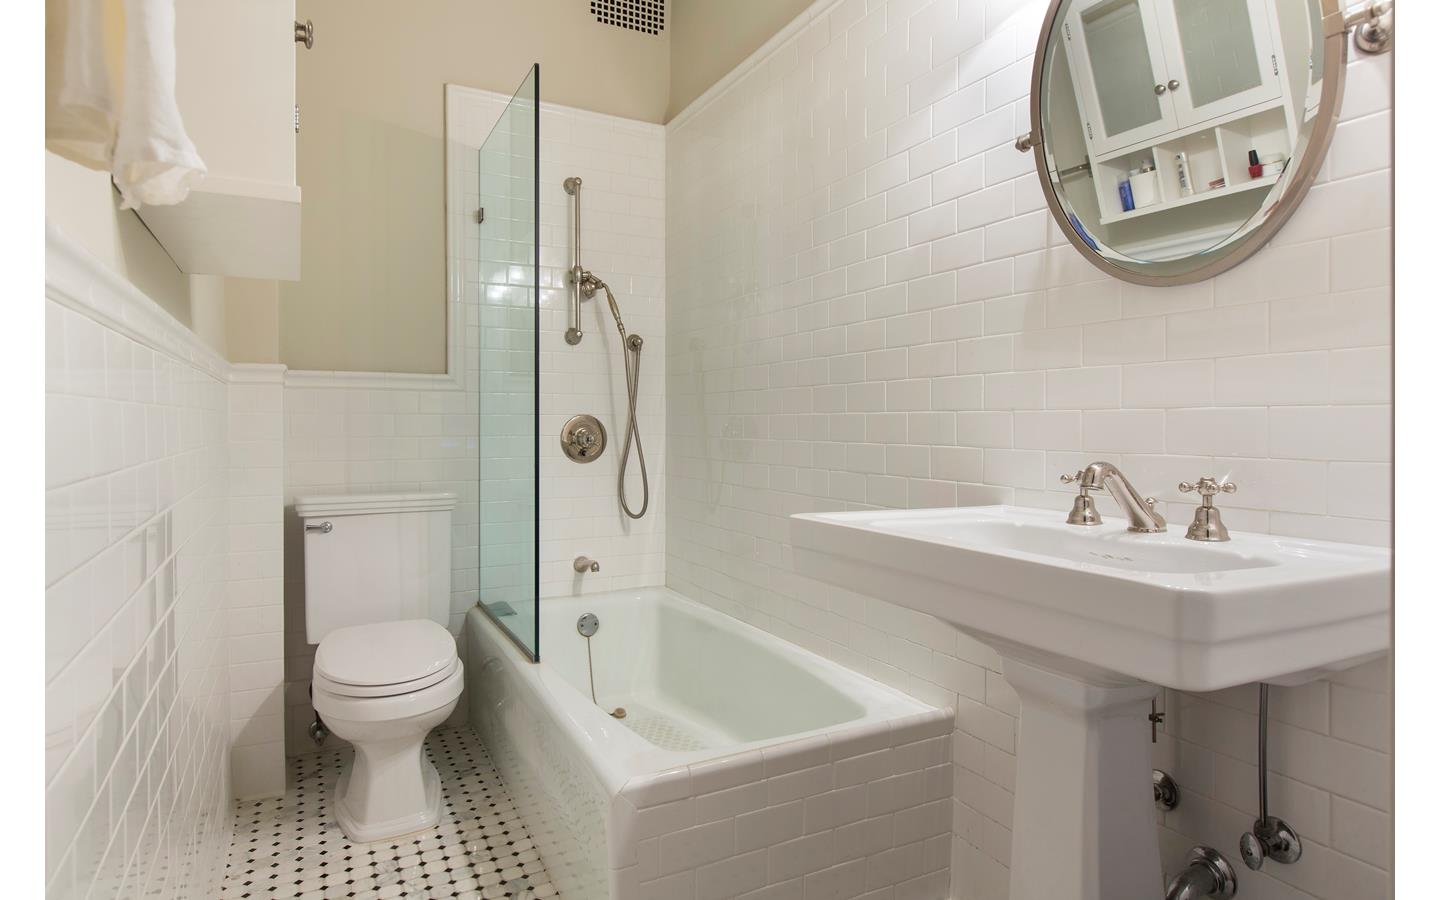 Bathroom Fixtures Upper East Side Nyc 6 east 76th st, 4f - upper east side, new york | douglas elliman